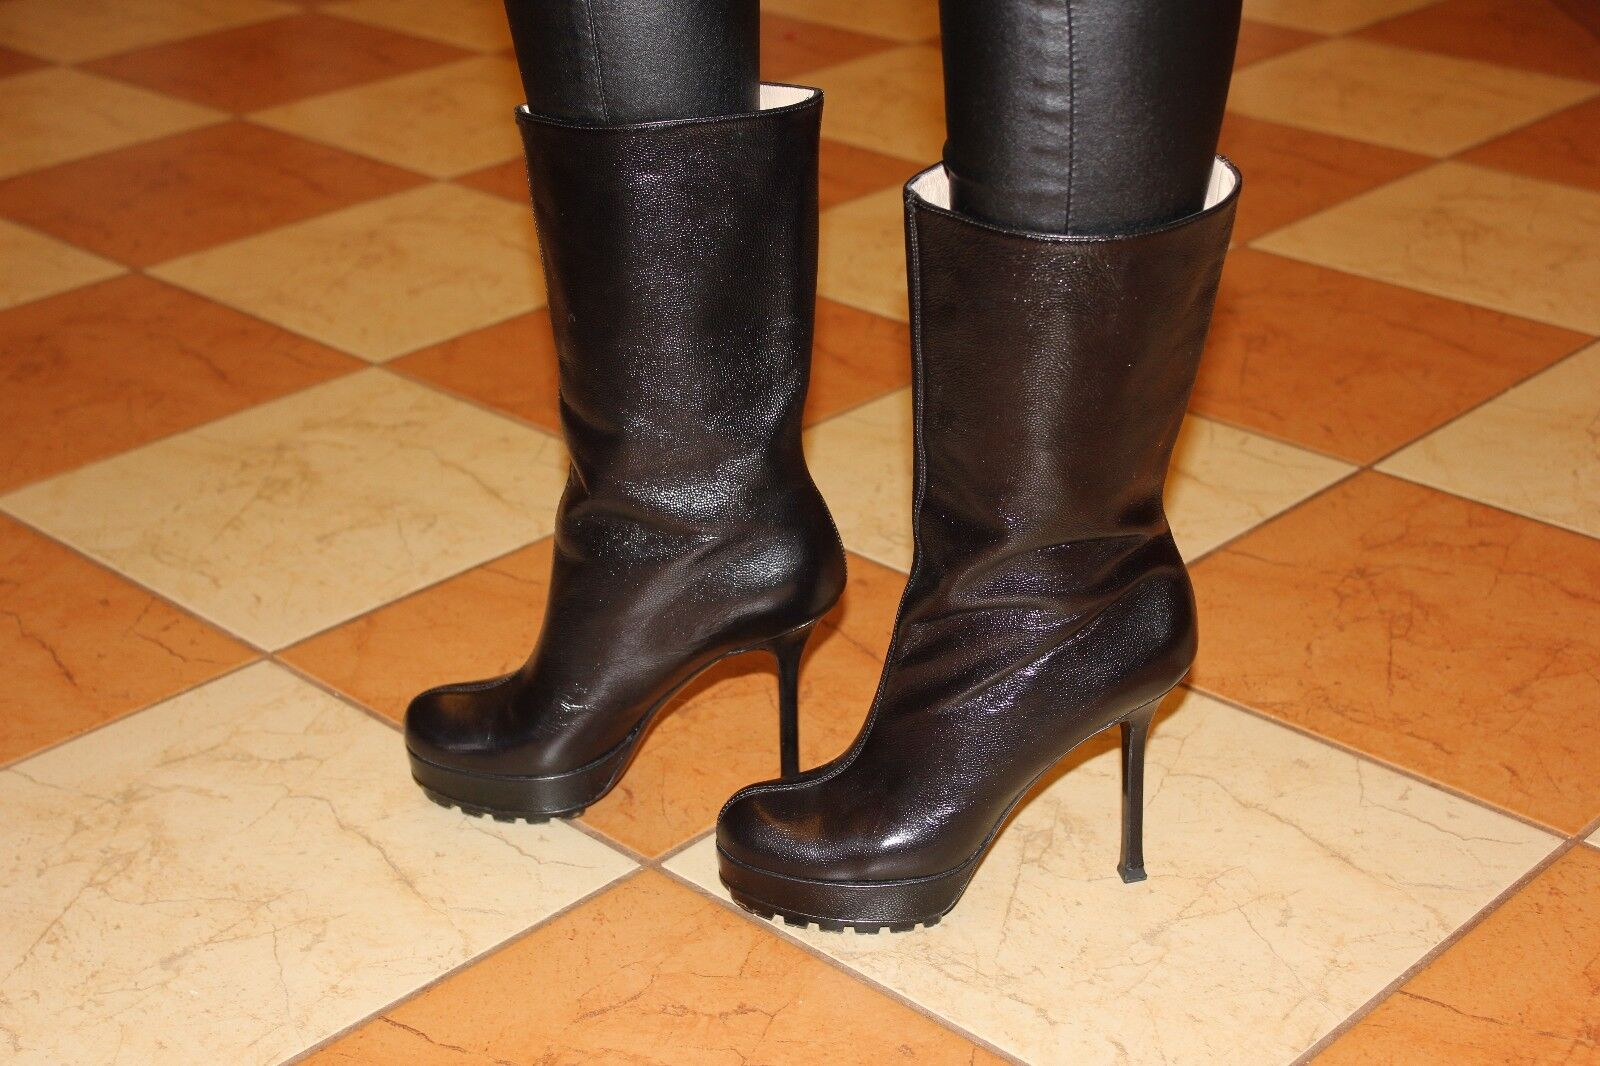 Yves Saint Laurent authentic designer women patent leather boots heels size 5